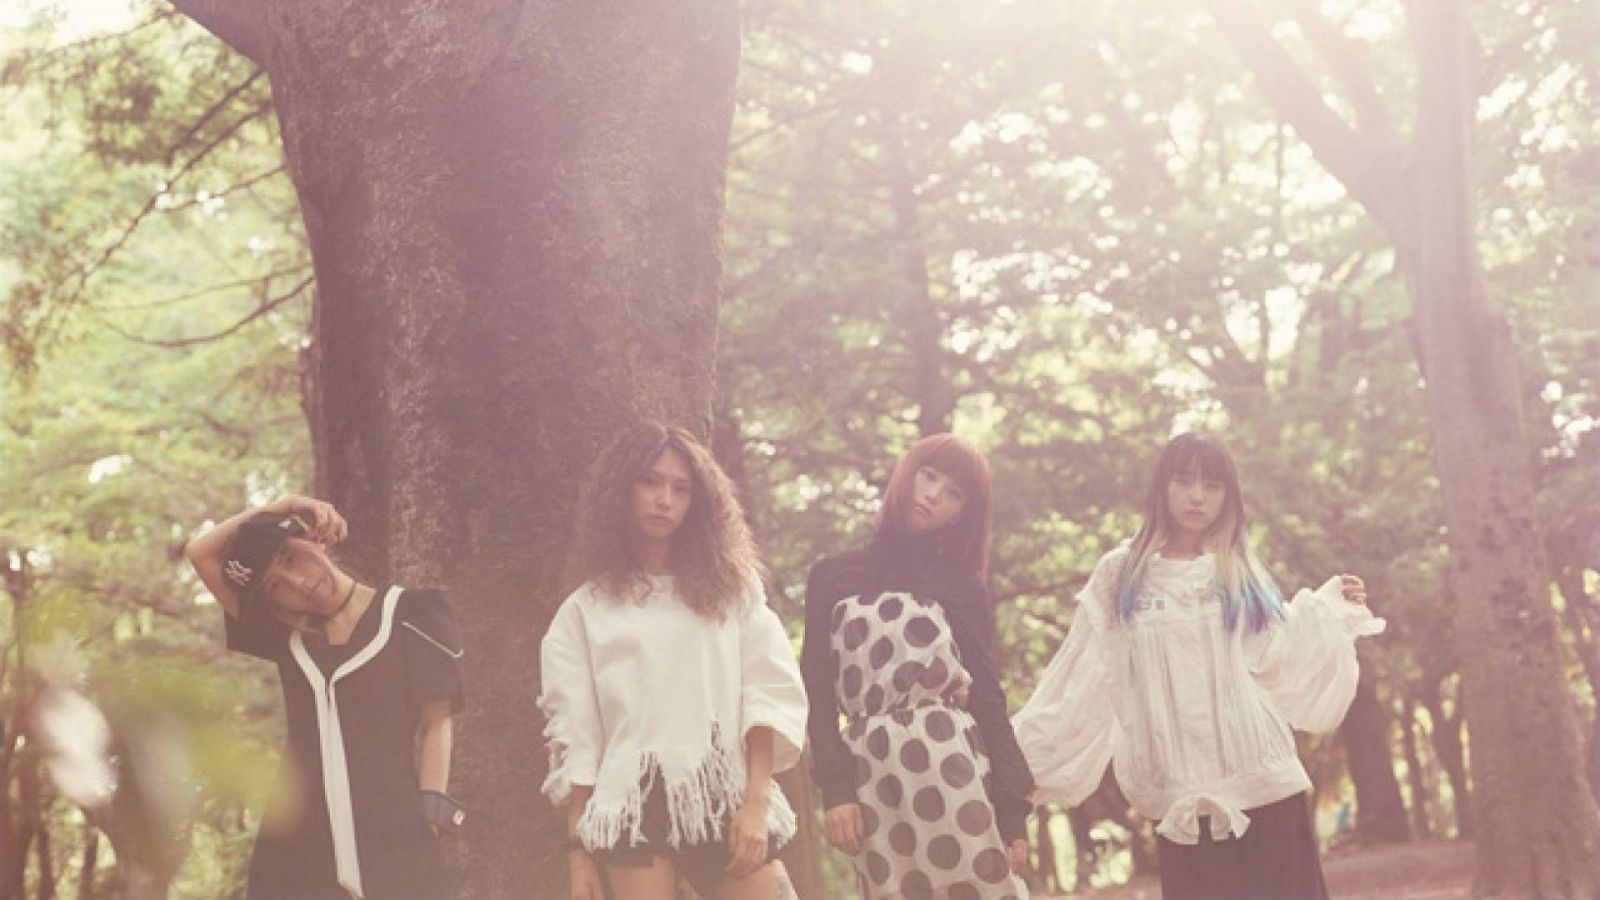 SCANDAL's Upcoming Single to be Released Digitally Worldwide © Epic Records Japan